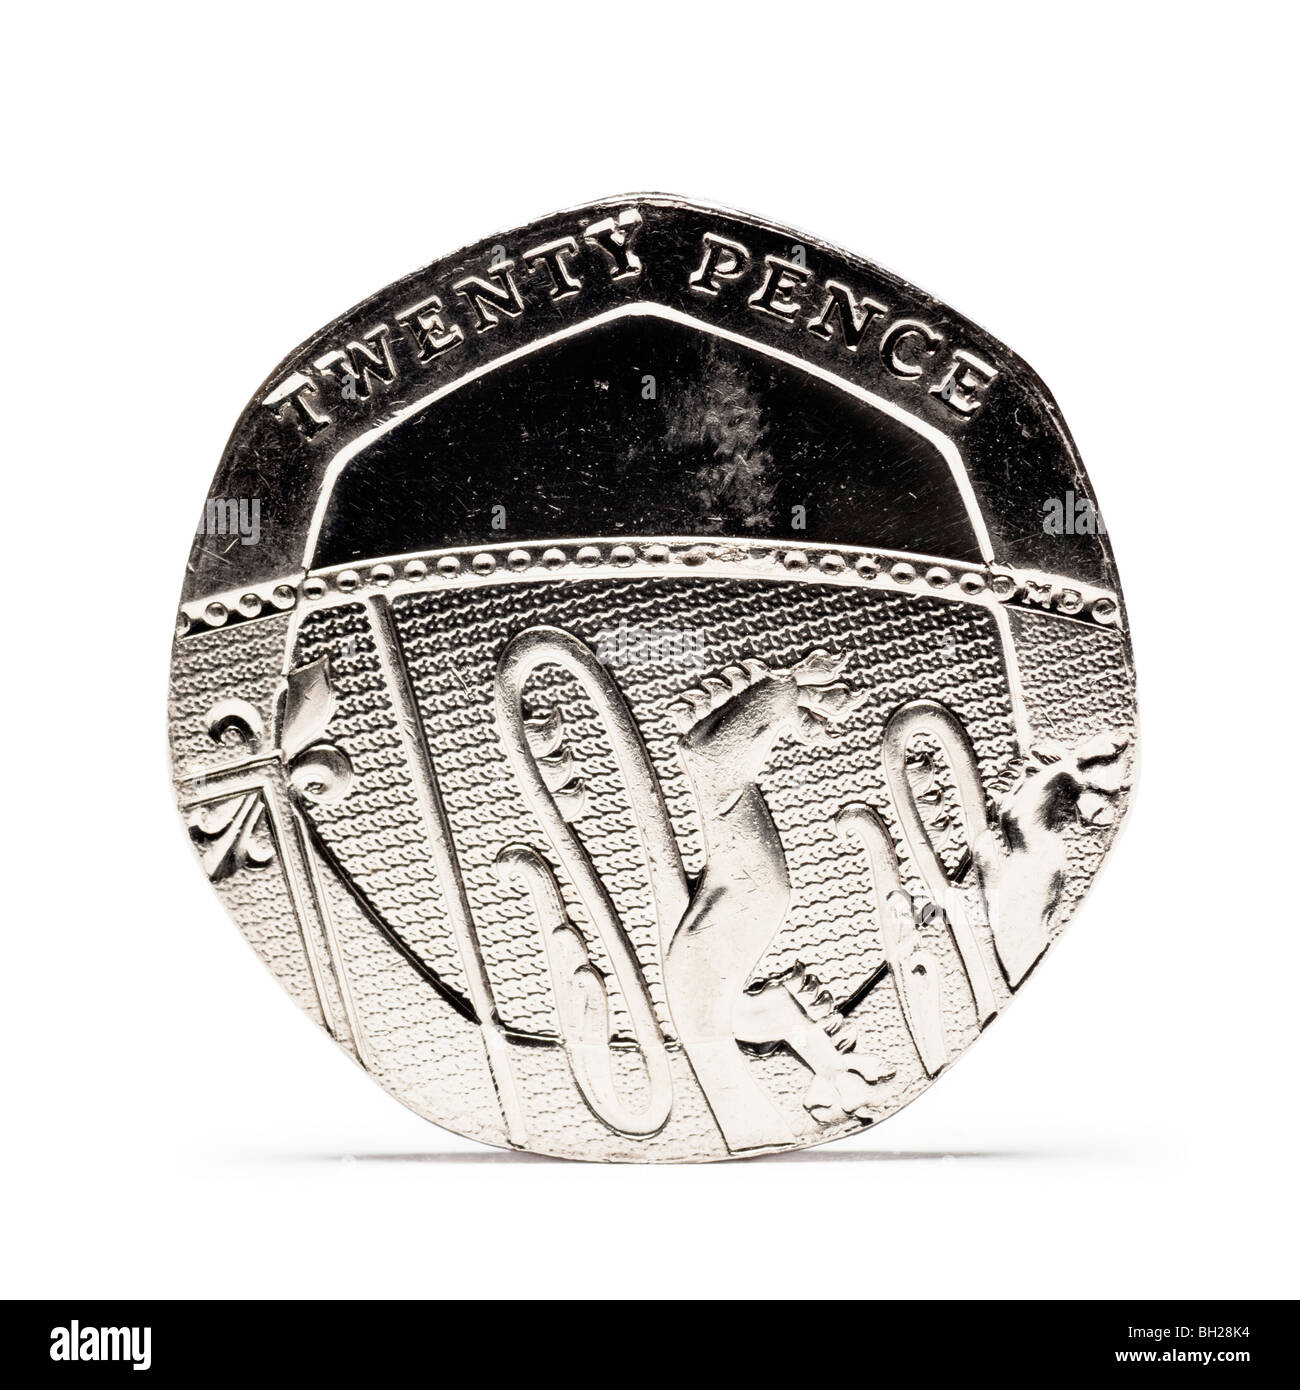 British Twenty Pence coin back view new design - Stock Image